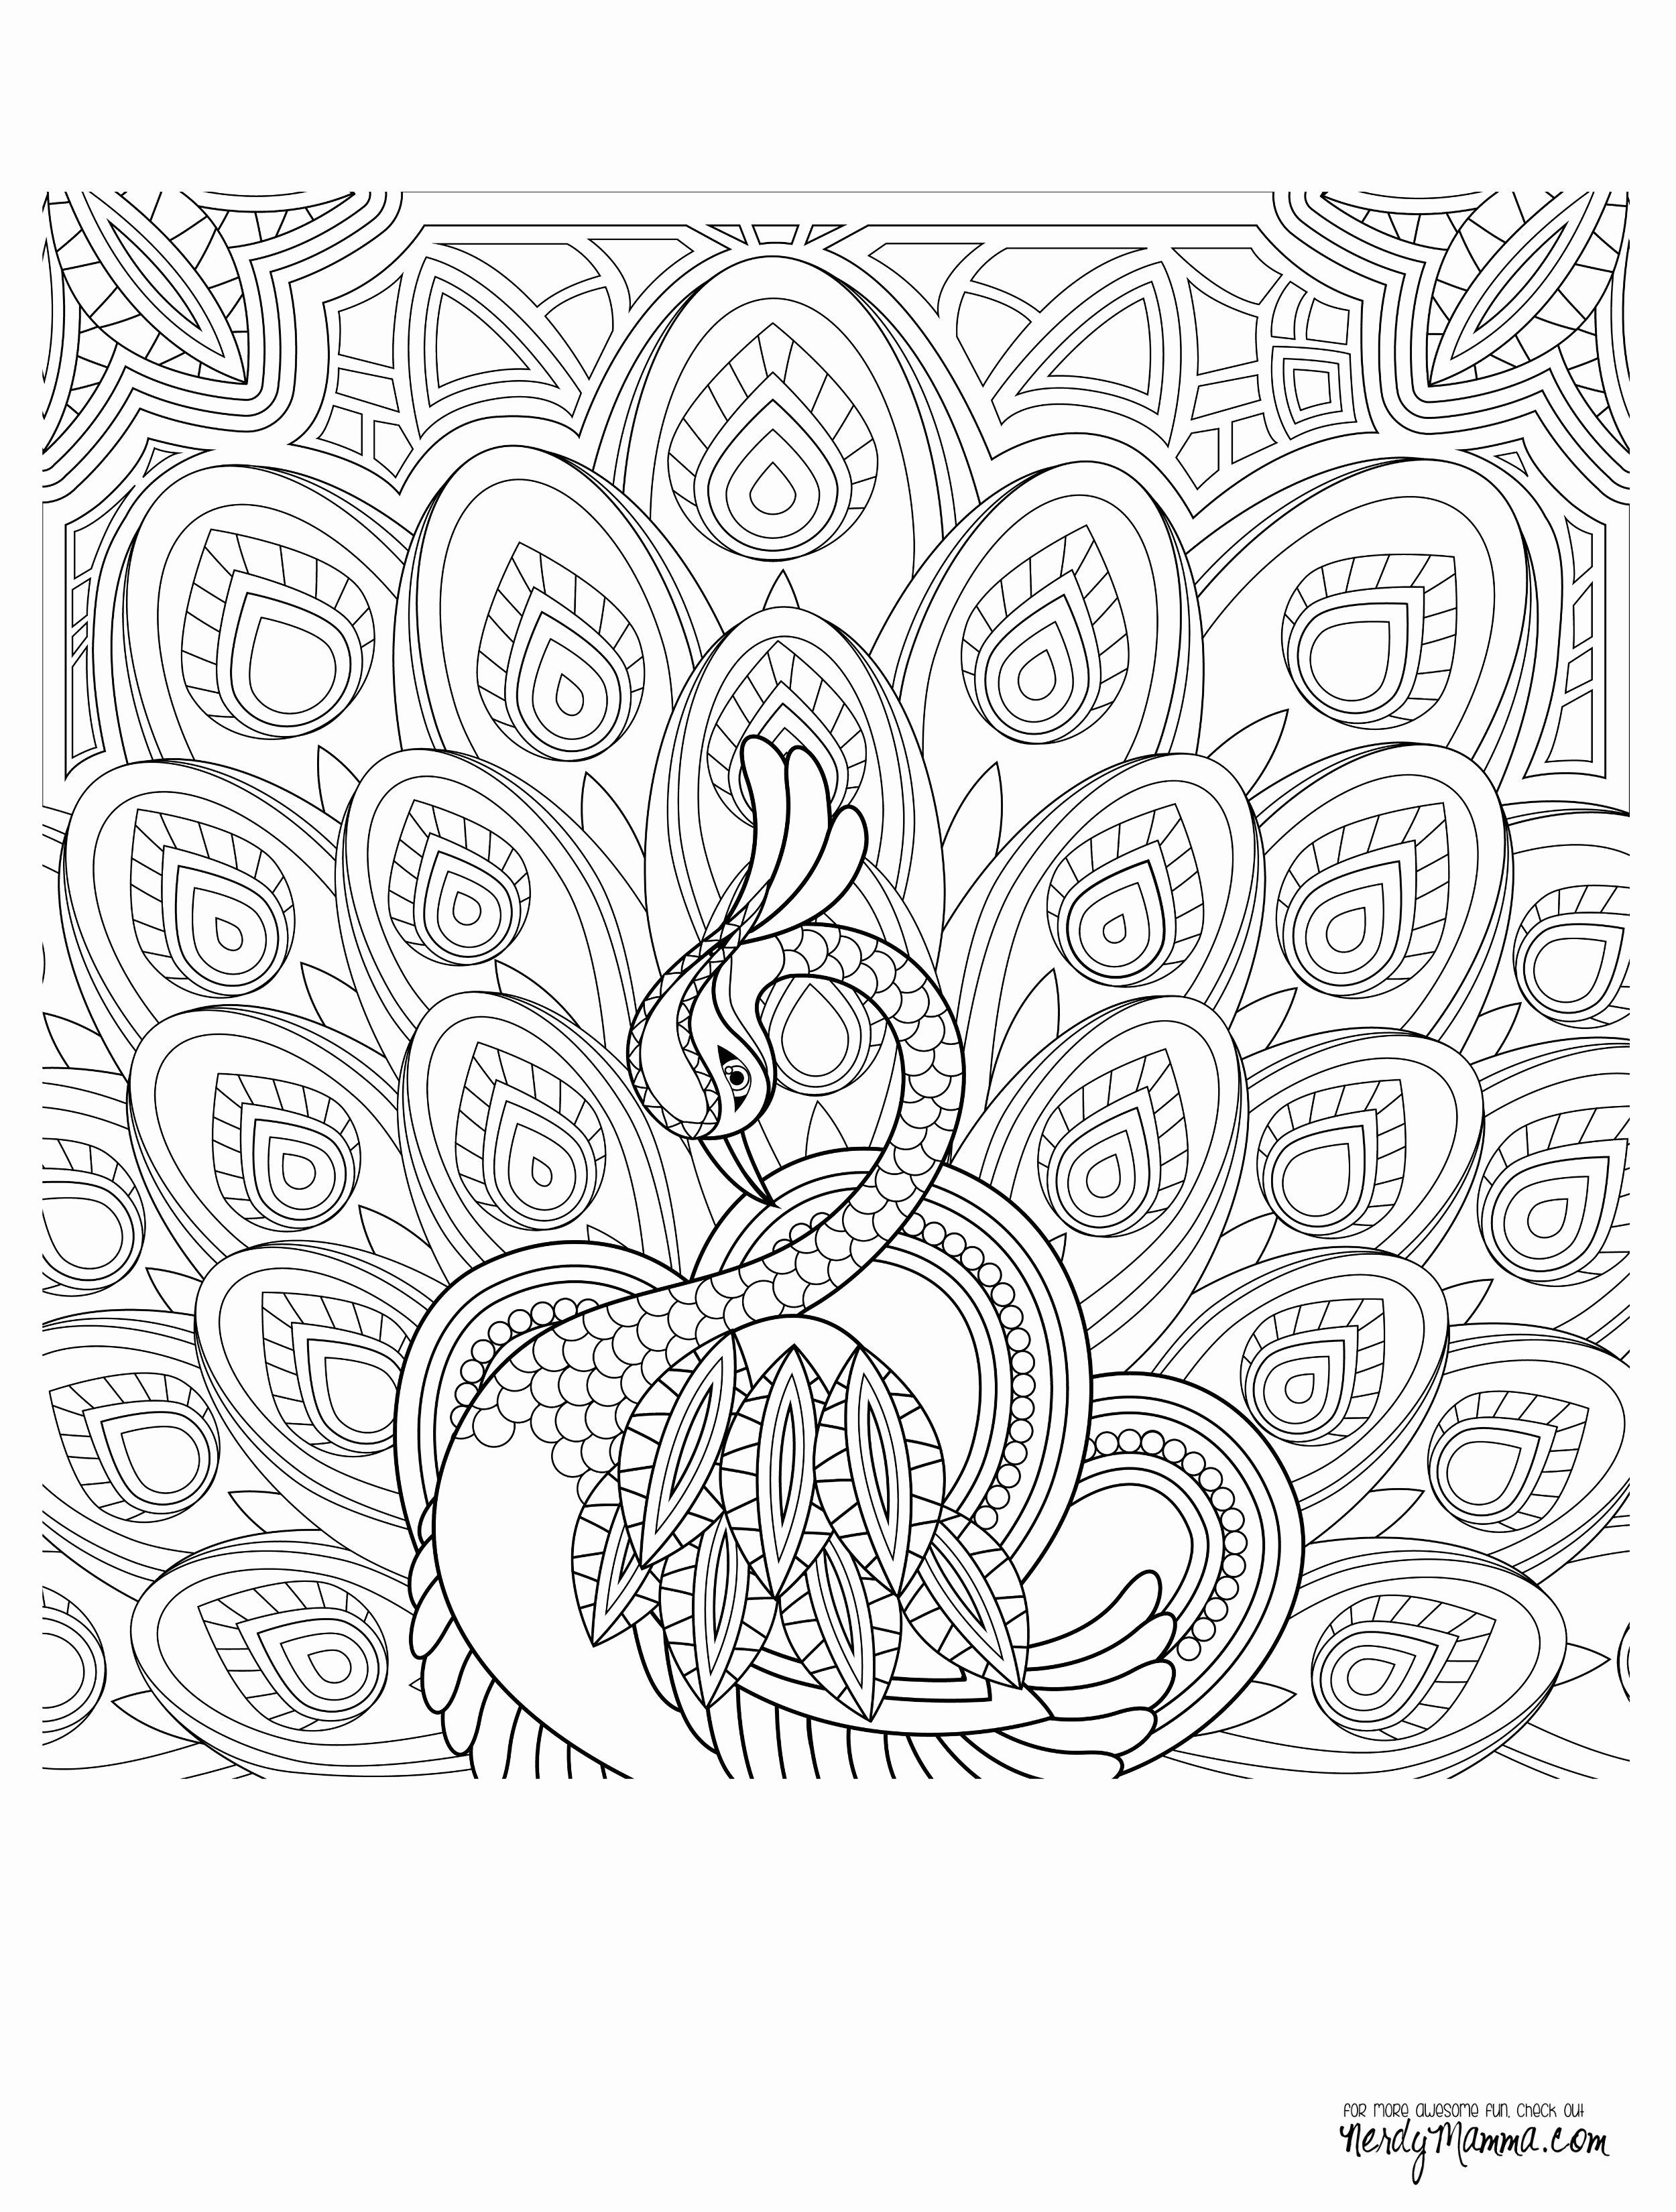 Poster Size Coloring Pages  to Print 18p - Free For Children